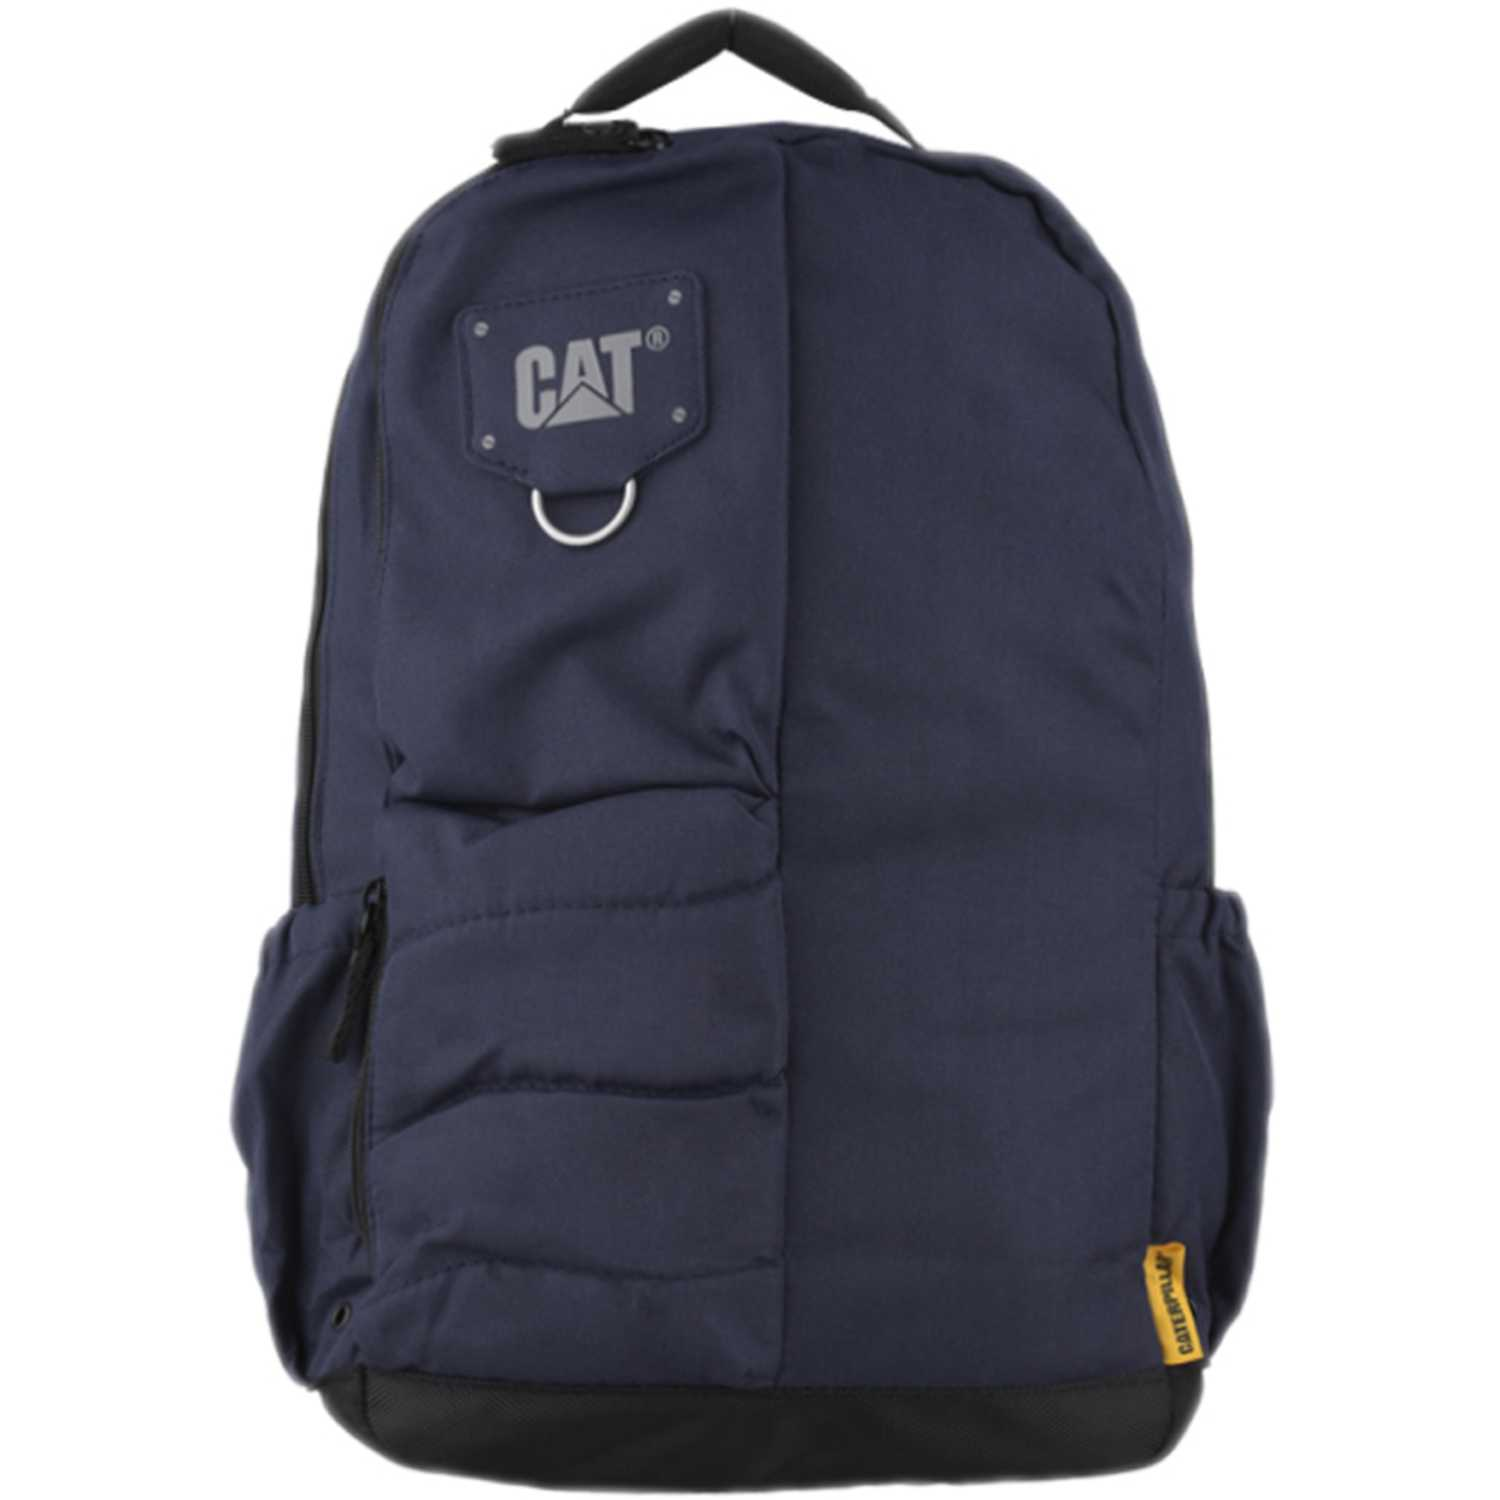 CAT bruce Azul Mochilas Multipropósitos